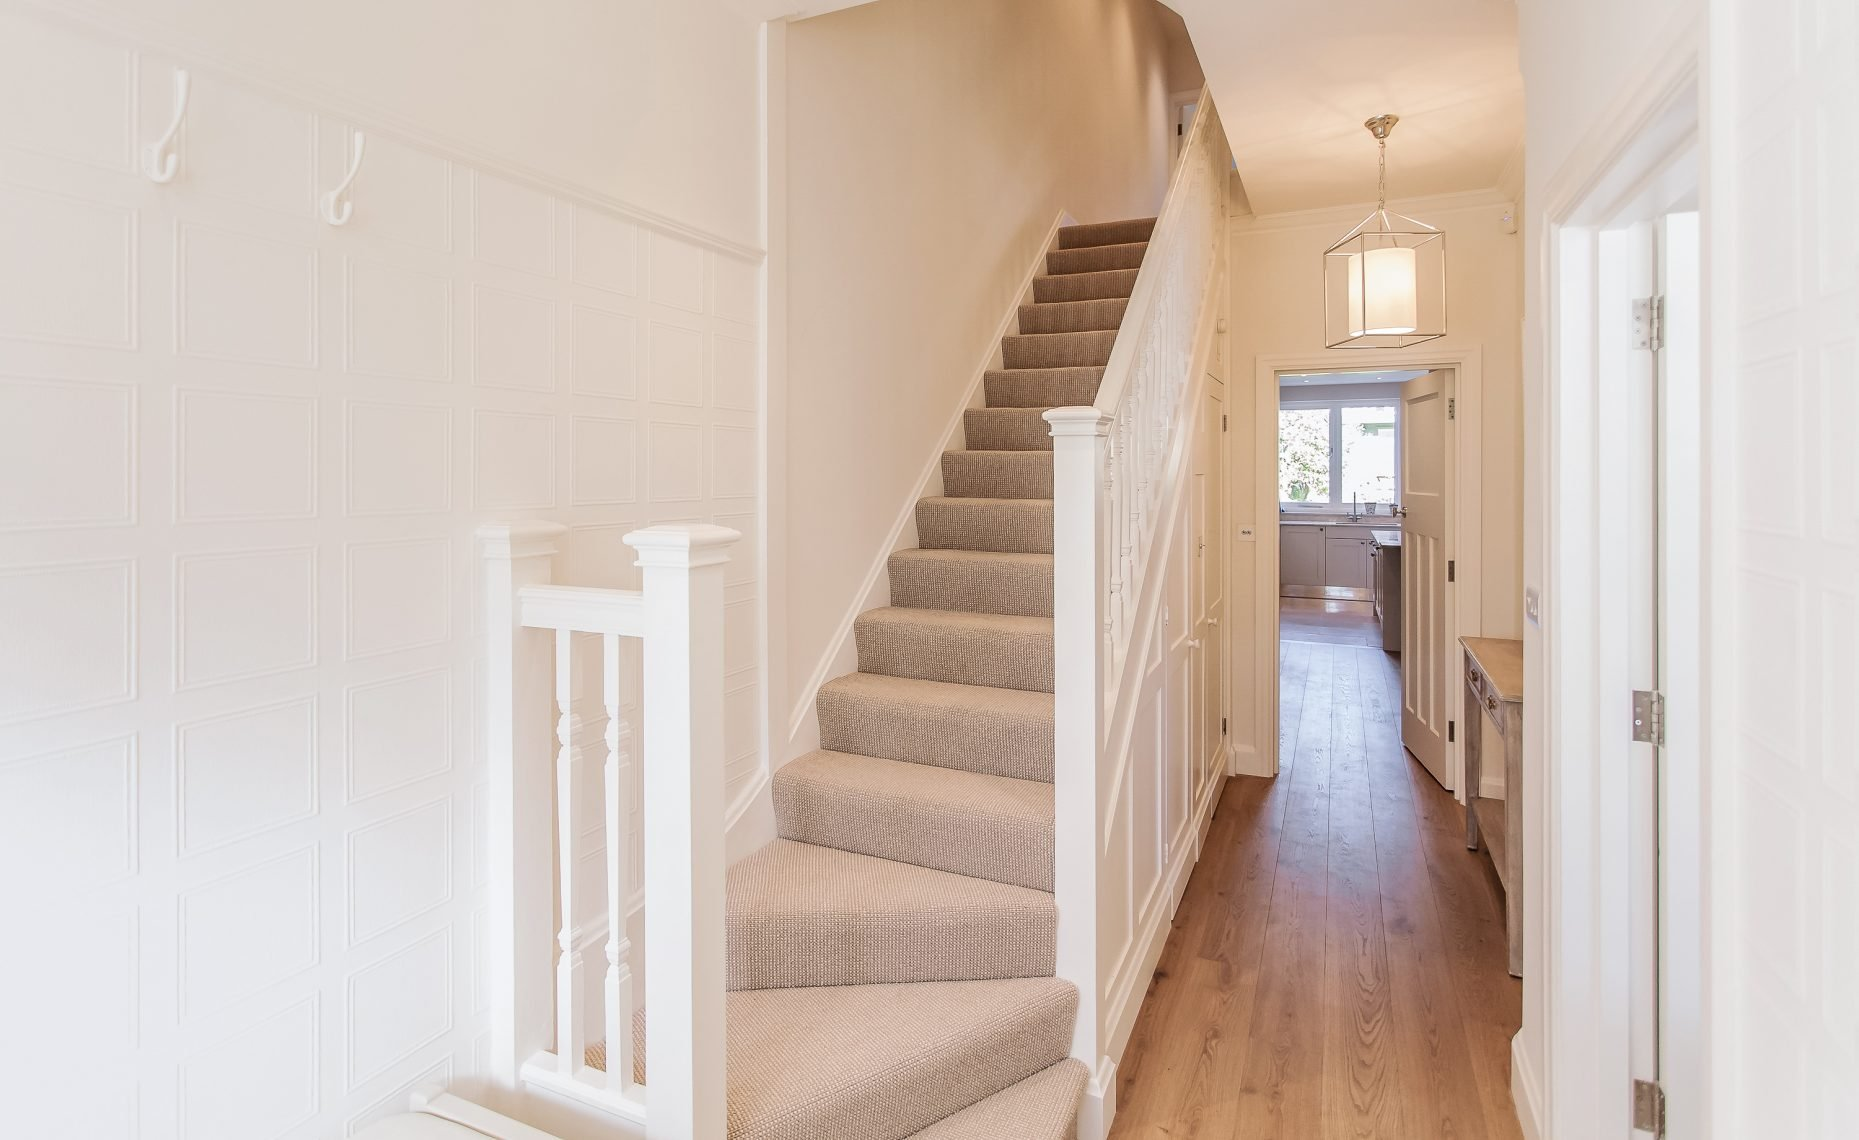 residential painting and decorating service for Hallway painted in All White from Farrow and Ball , Wandsworth, London